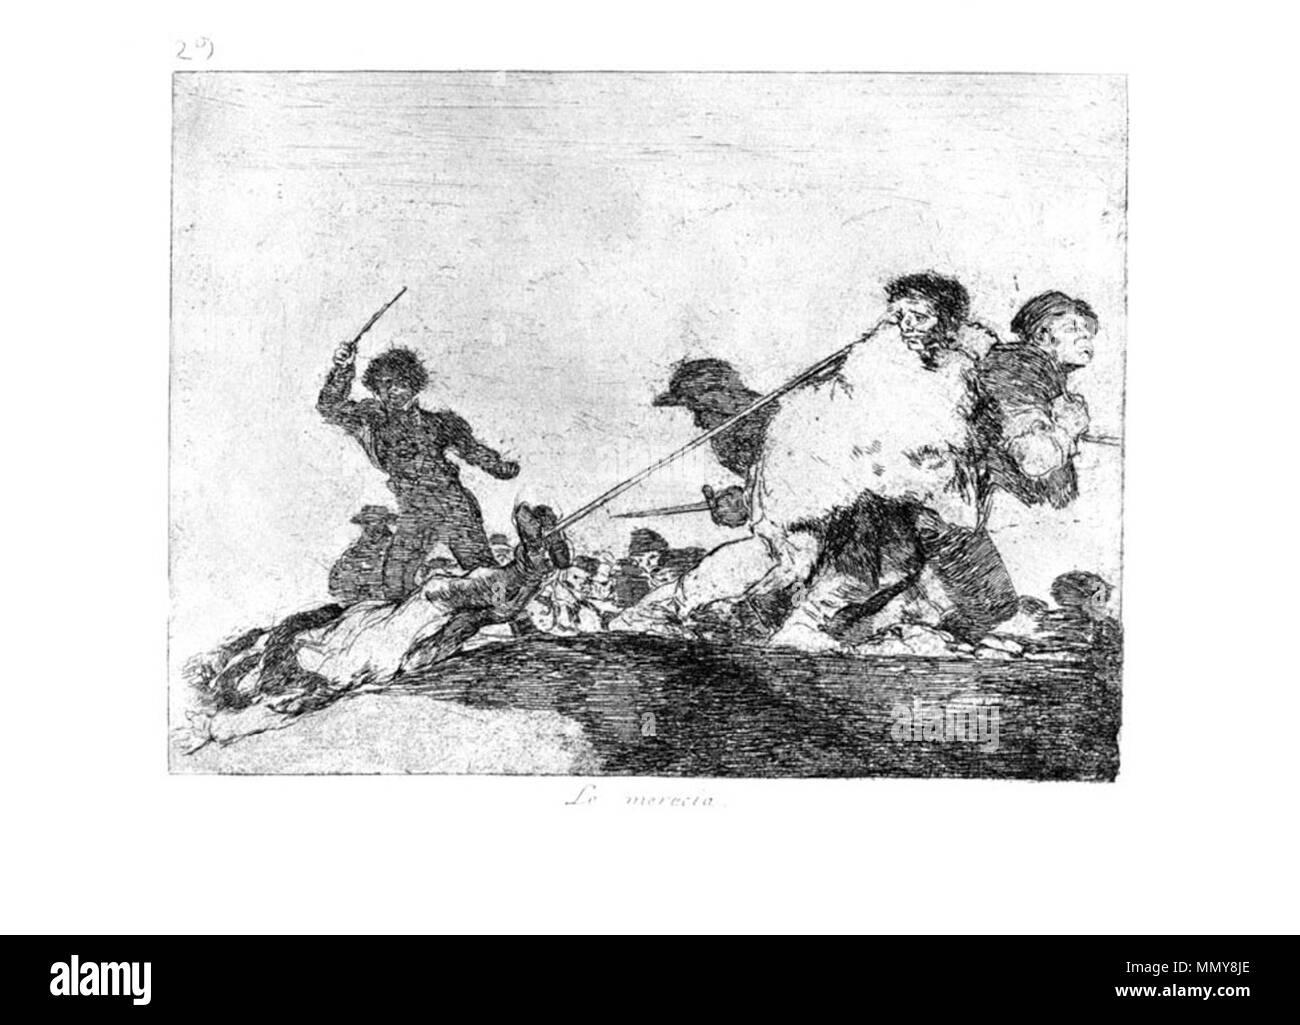 . Los Desatres de la Guerra is a set of 80 aquatint prints created by Francisco Goya in the 1810s. Plate 29: Lo merecia. (He deserved it. )  . 1810s.   Francisco Goya (1746–1828)   Alternative names Francisco Goya Lucientes, Francisco de Goya y Lucientes, Francisco José Goya Lucientes  Description Spanish painter, printmaker, lithographer, engraver and etcher  Date of birth/death 30 March 1746 16 April 1828  Location of birth/death Fuendetodos Bordeaux  Work location Madrid, Zaragoza, Bordeaux  Authority control  : Q5432 VIAF:?54343141 ISNI:?0000 0001 2280 1608 ULAN:?500118936 LCCN:?n79003 - Stock Image